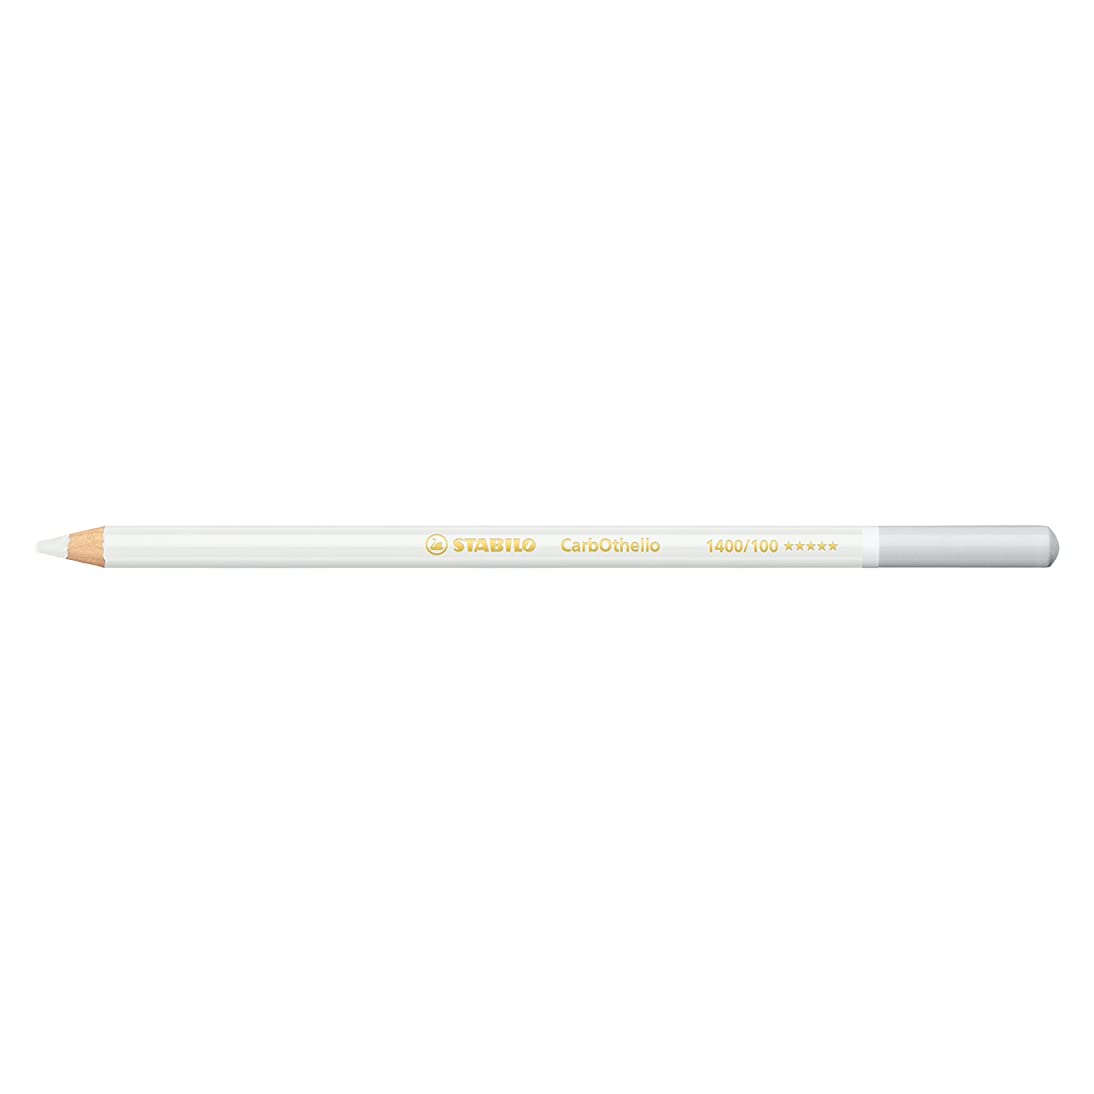 Stabilo CarbOthello Chalk-Pastel Colored Pencil, 4.4 mm - Titanium White